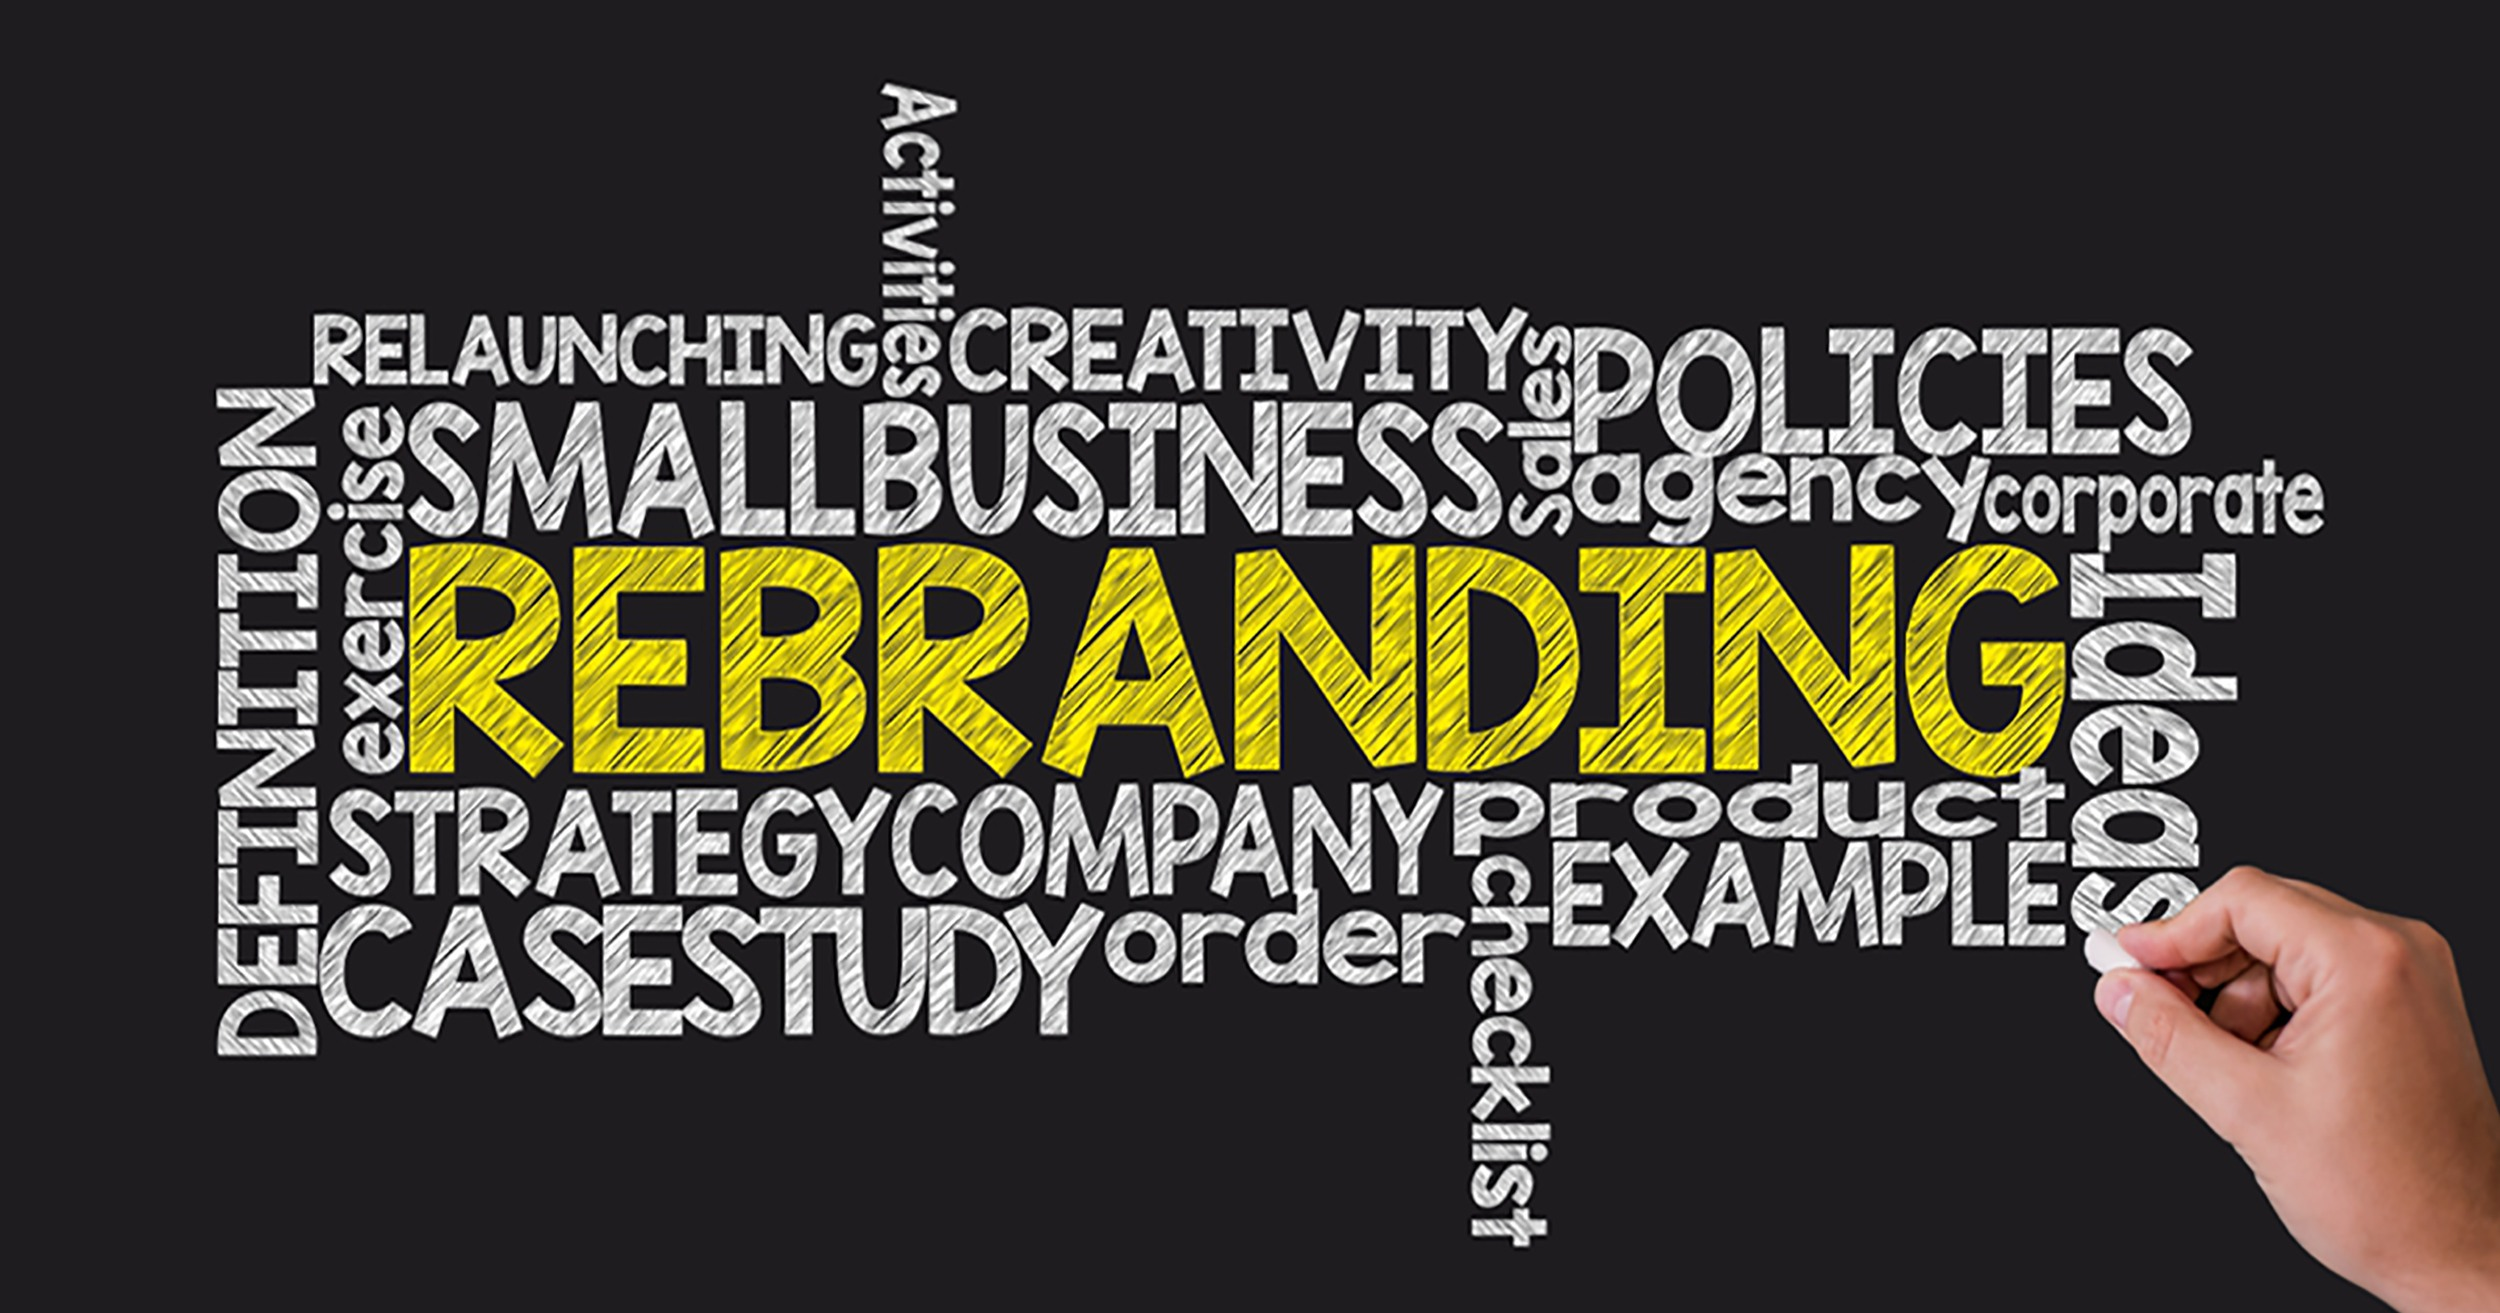 Rebranding - Decline in Sales ? Its Time to Rebrand.